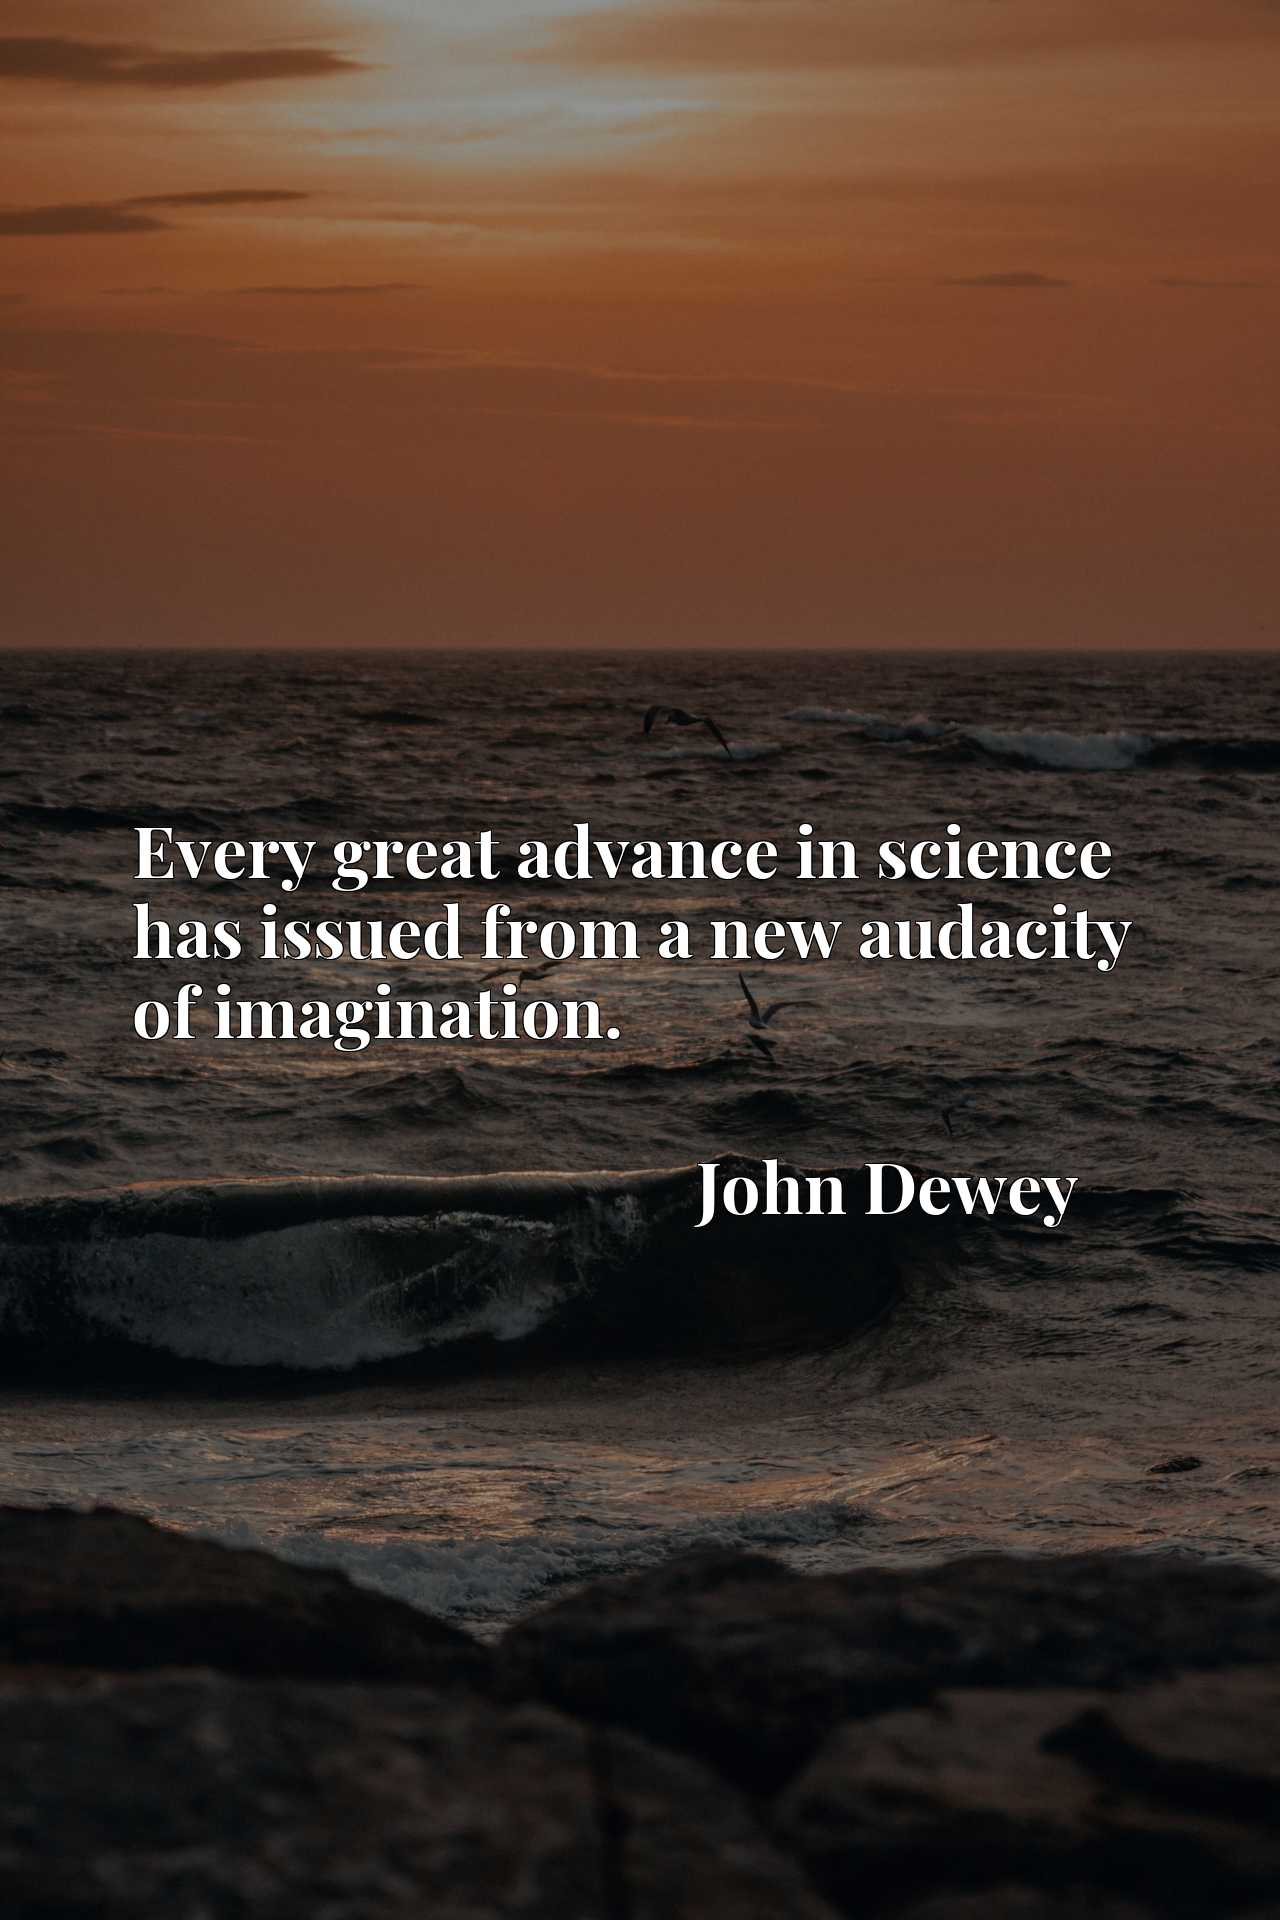 Quote Picture :Every great advance in science has issued from a new audacity of imagination.